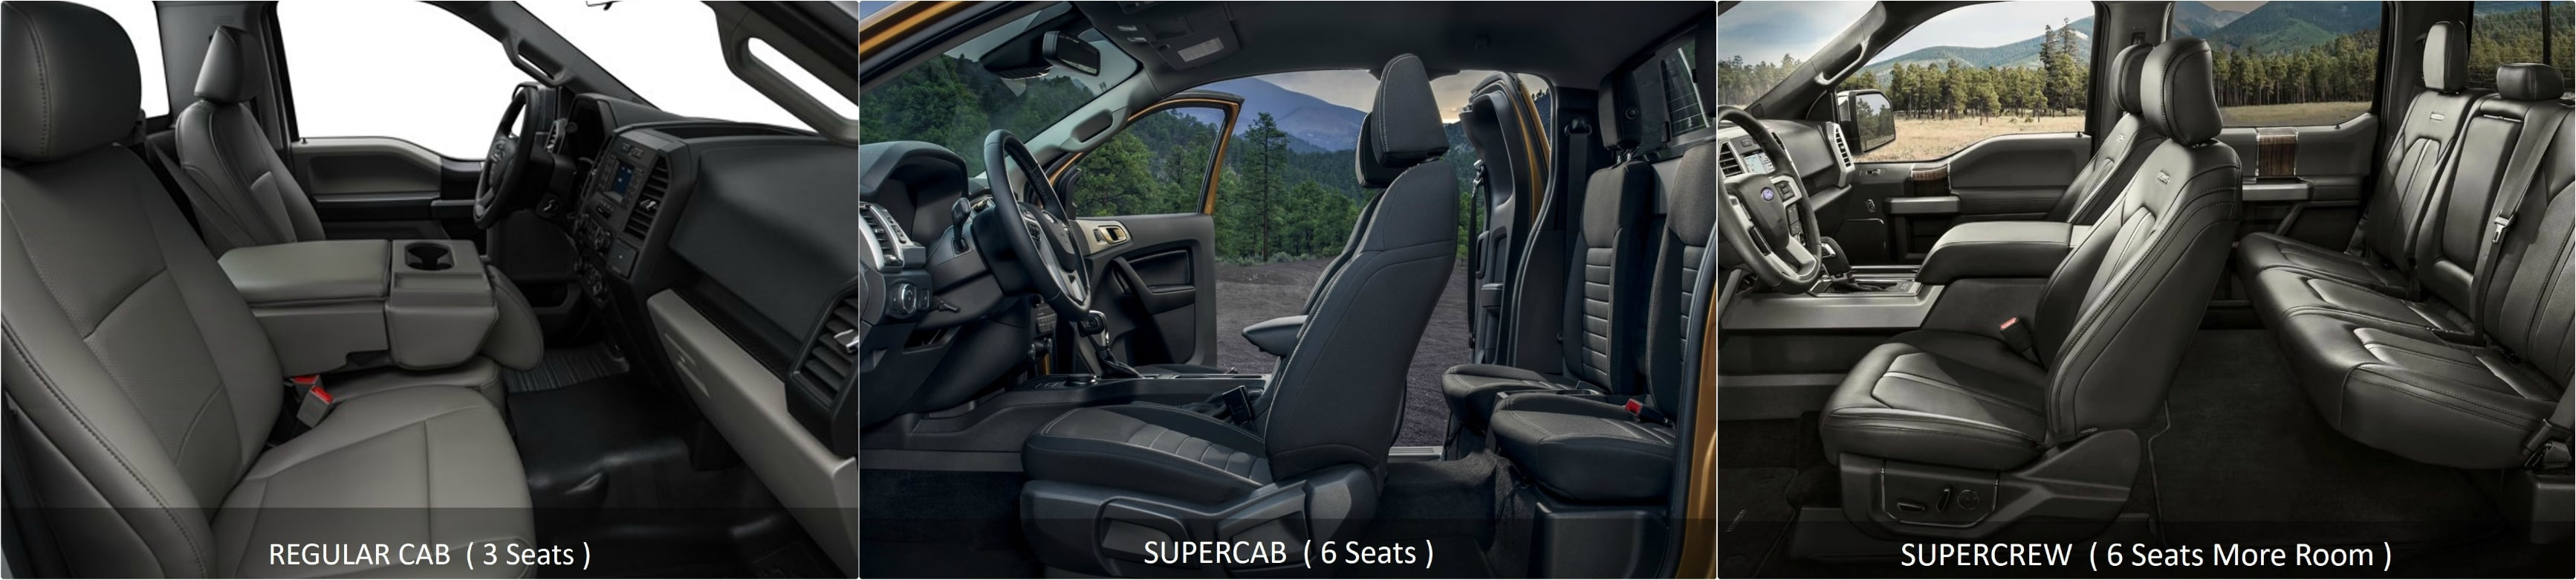 interior seating comparison of the Ford F150 Regular Cab vs. SuperCab vs. SuperCrew